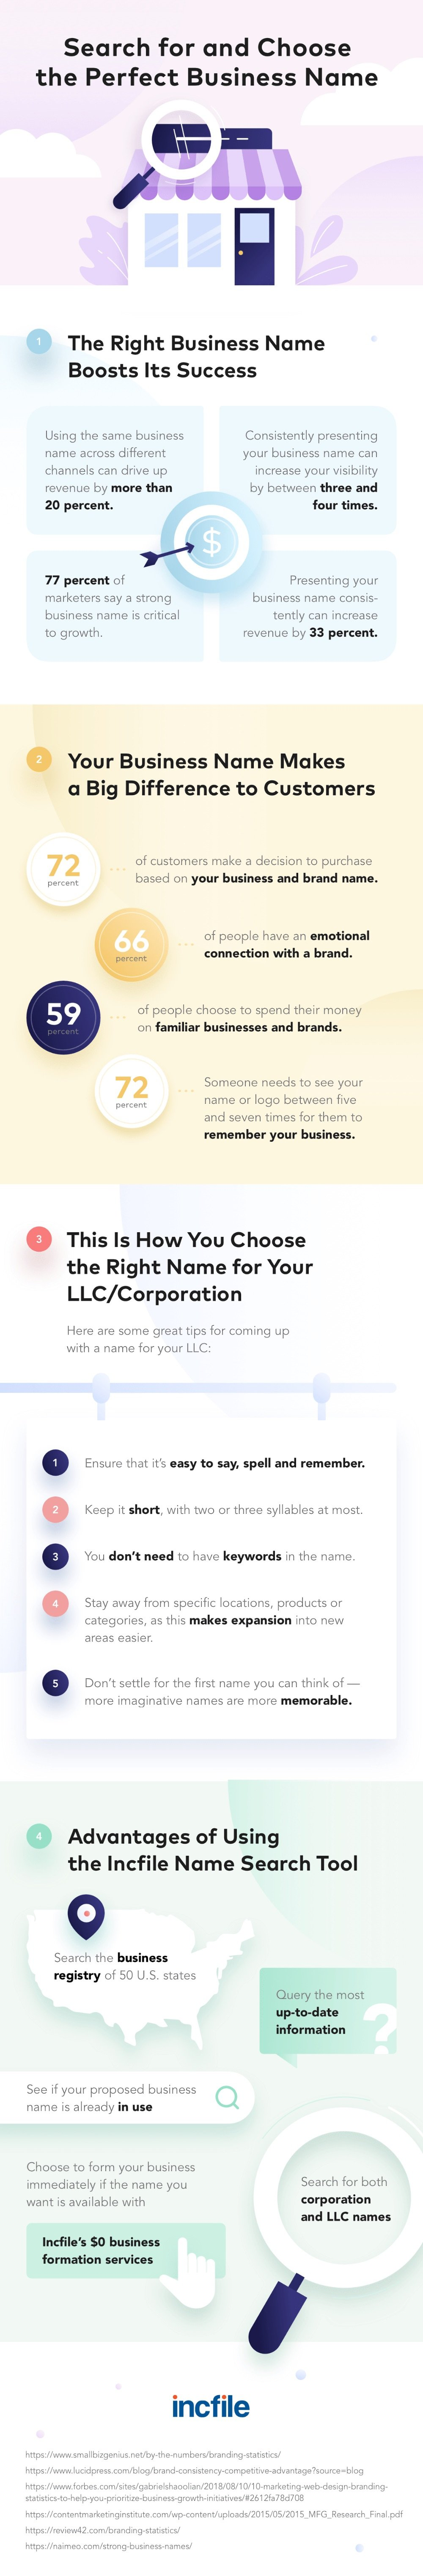 Search and Choose Your Business Name